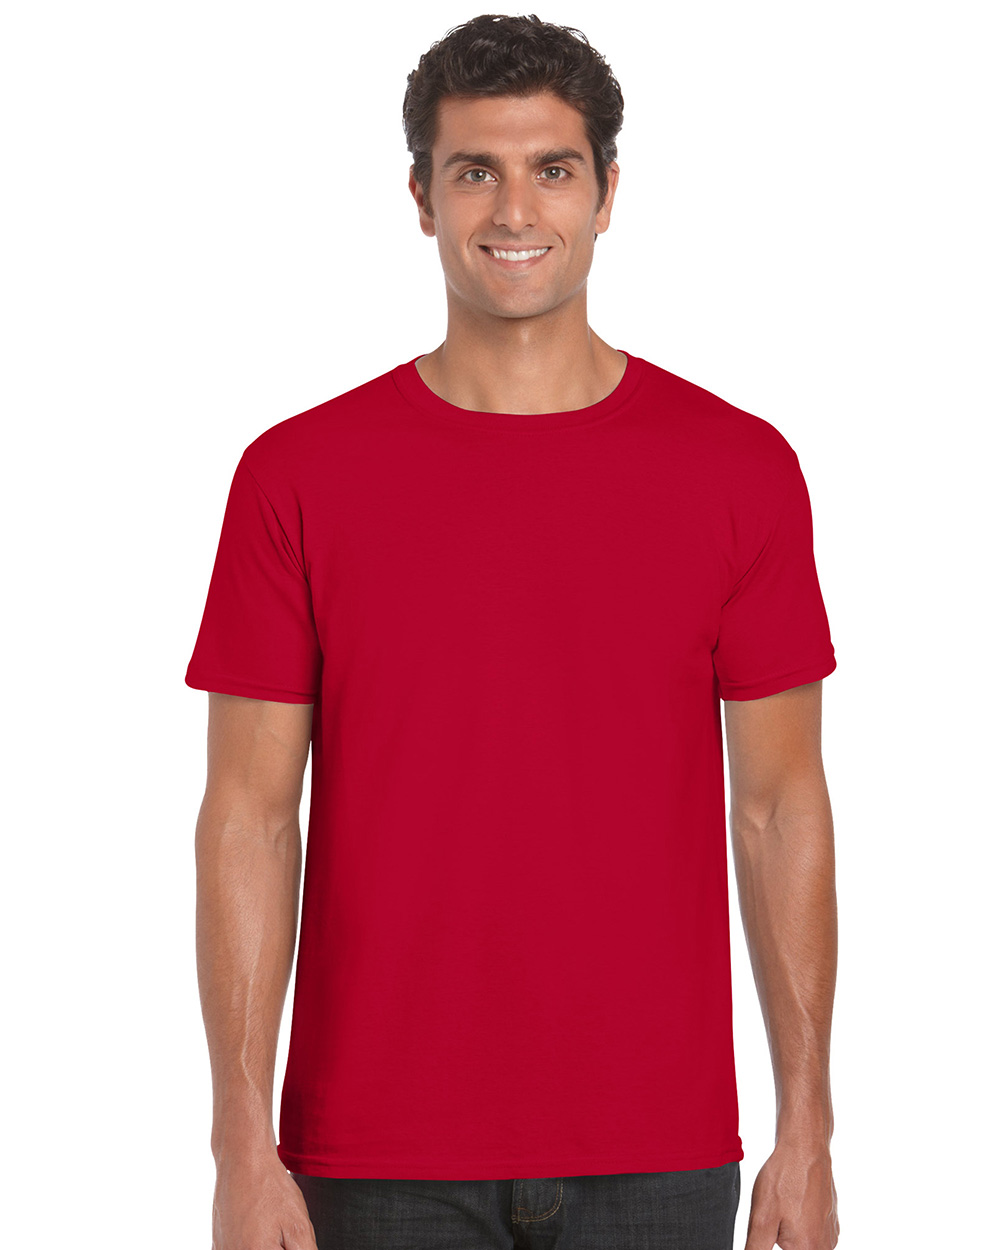 Gildan     64000     Softstyle Euro Fit Adult T-Shirt    4.5 oz. 90  % Cotton / 10% Polyester